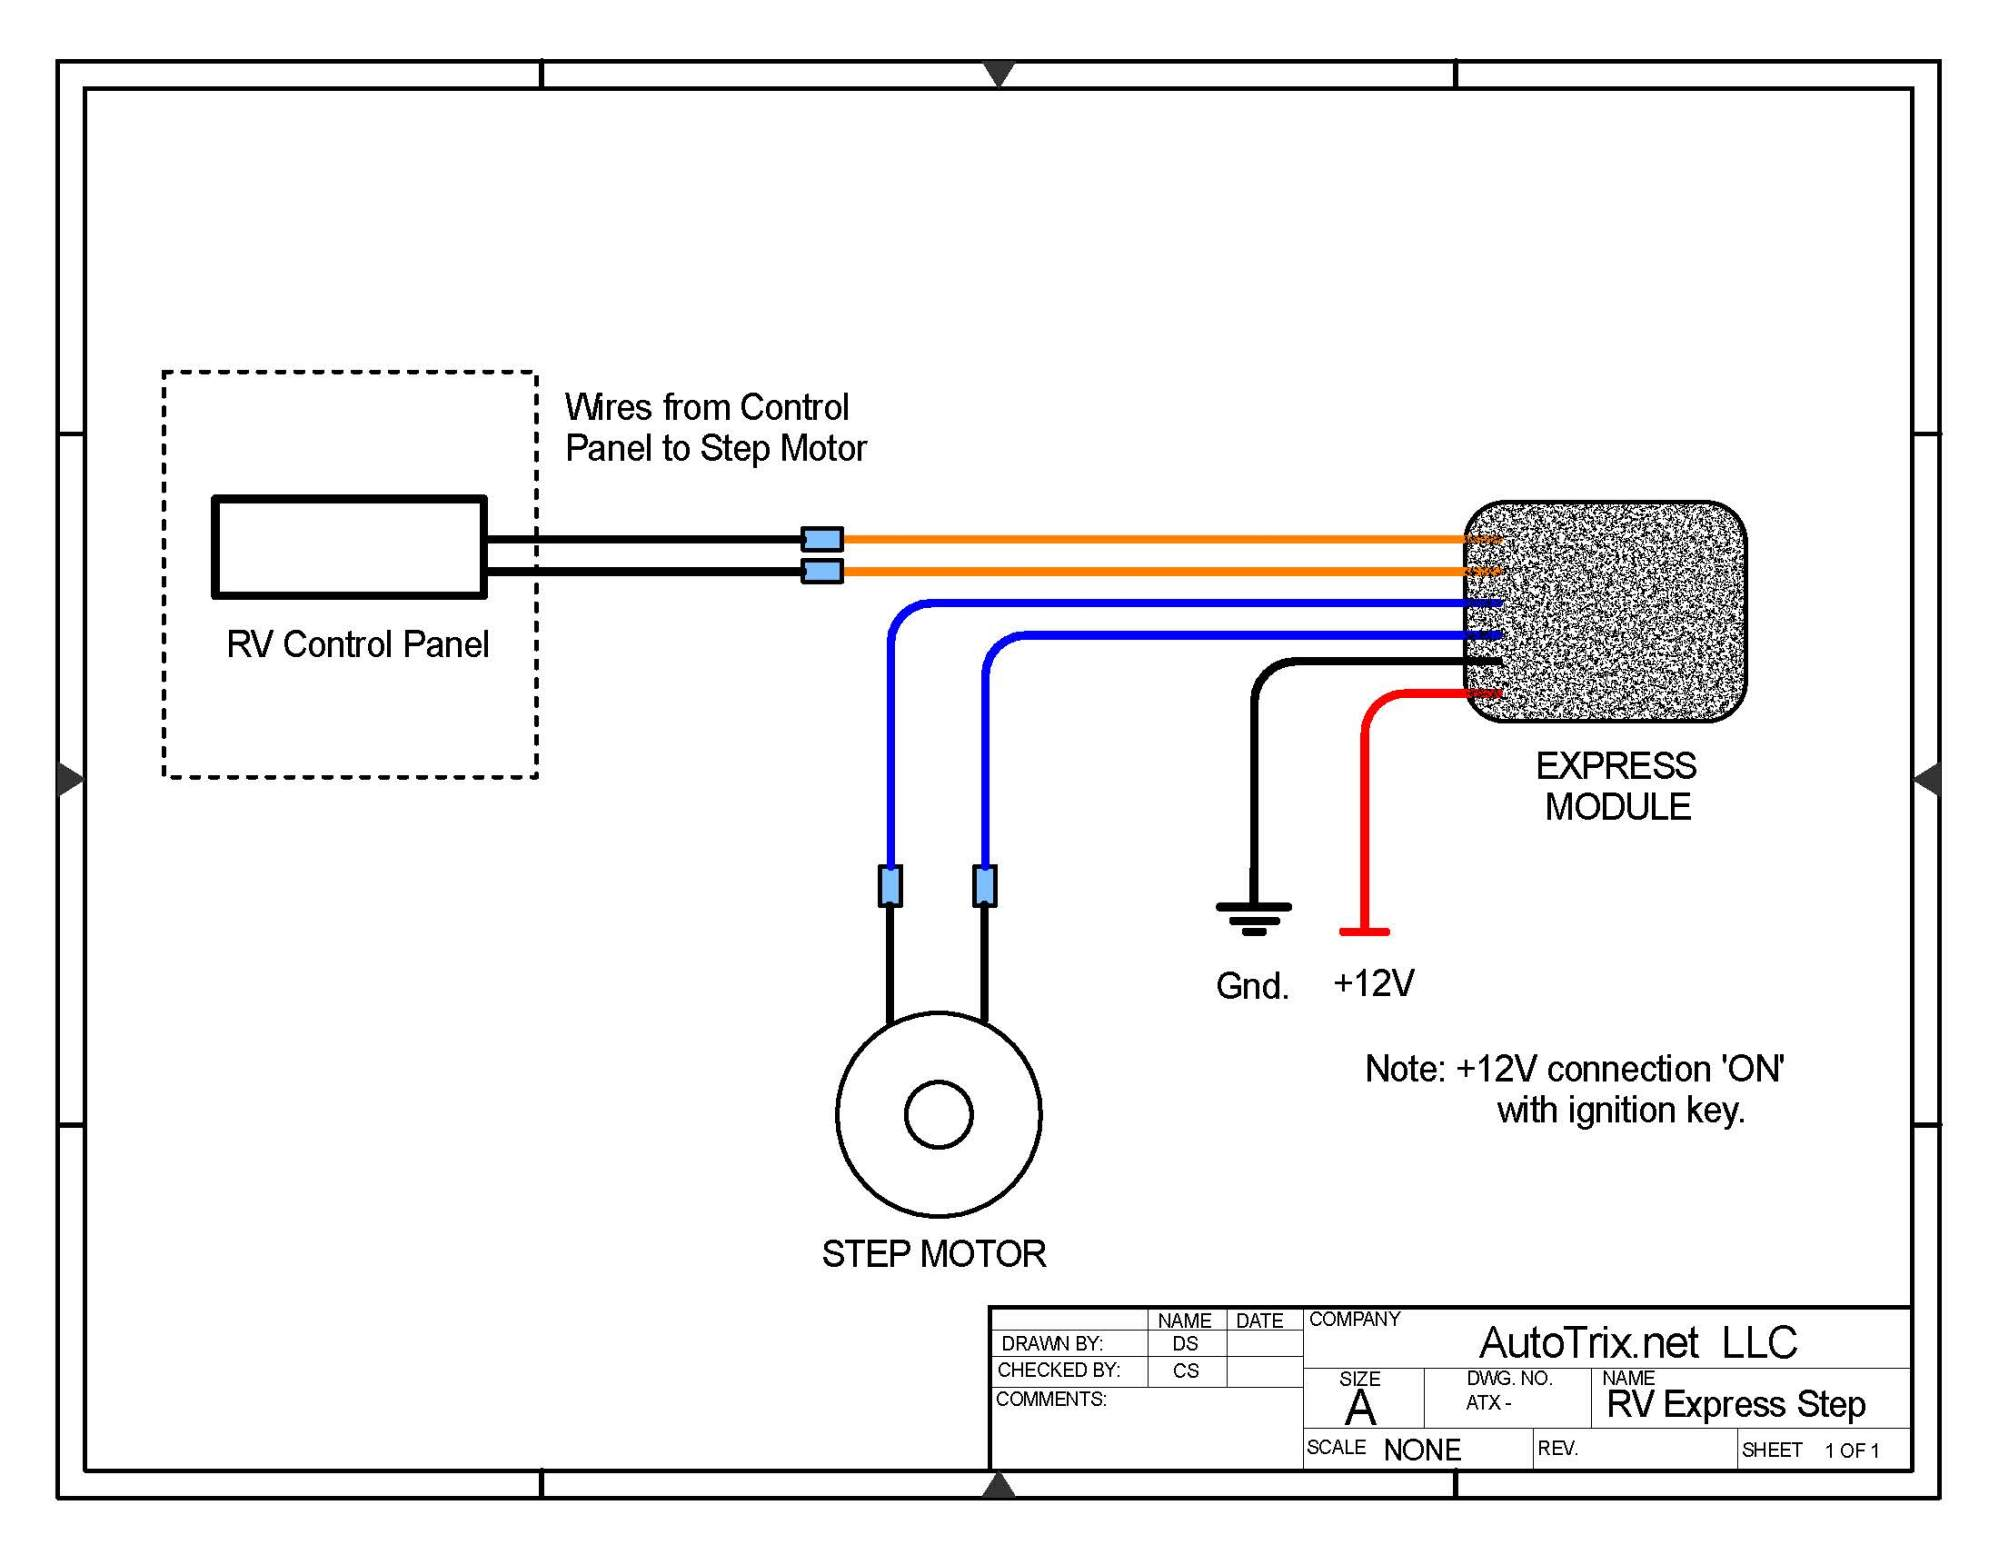 hight resolution of universal rv step cover express module motor install autotrix netrv step wiring diagram 5